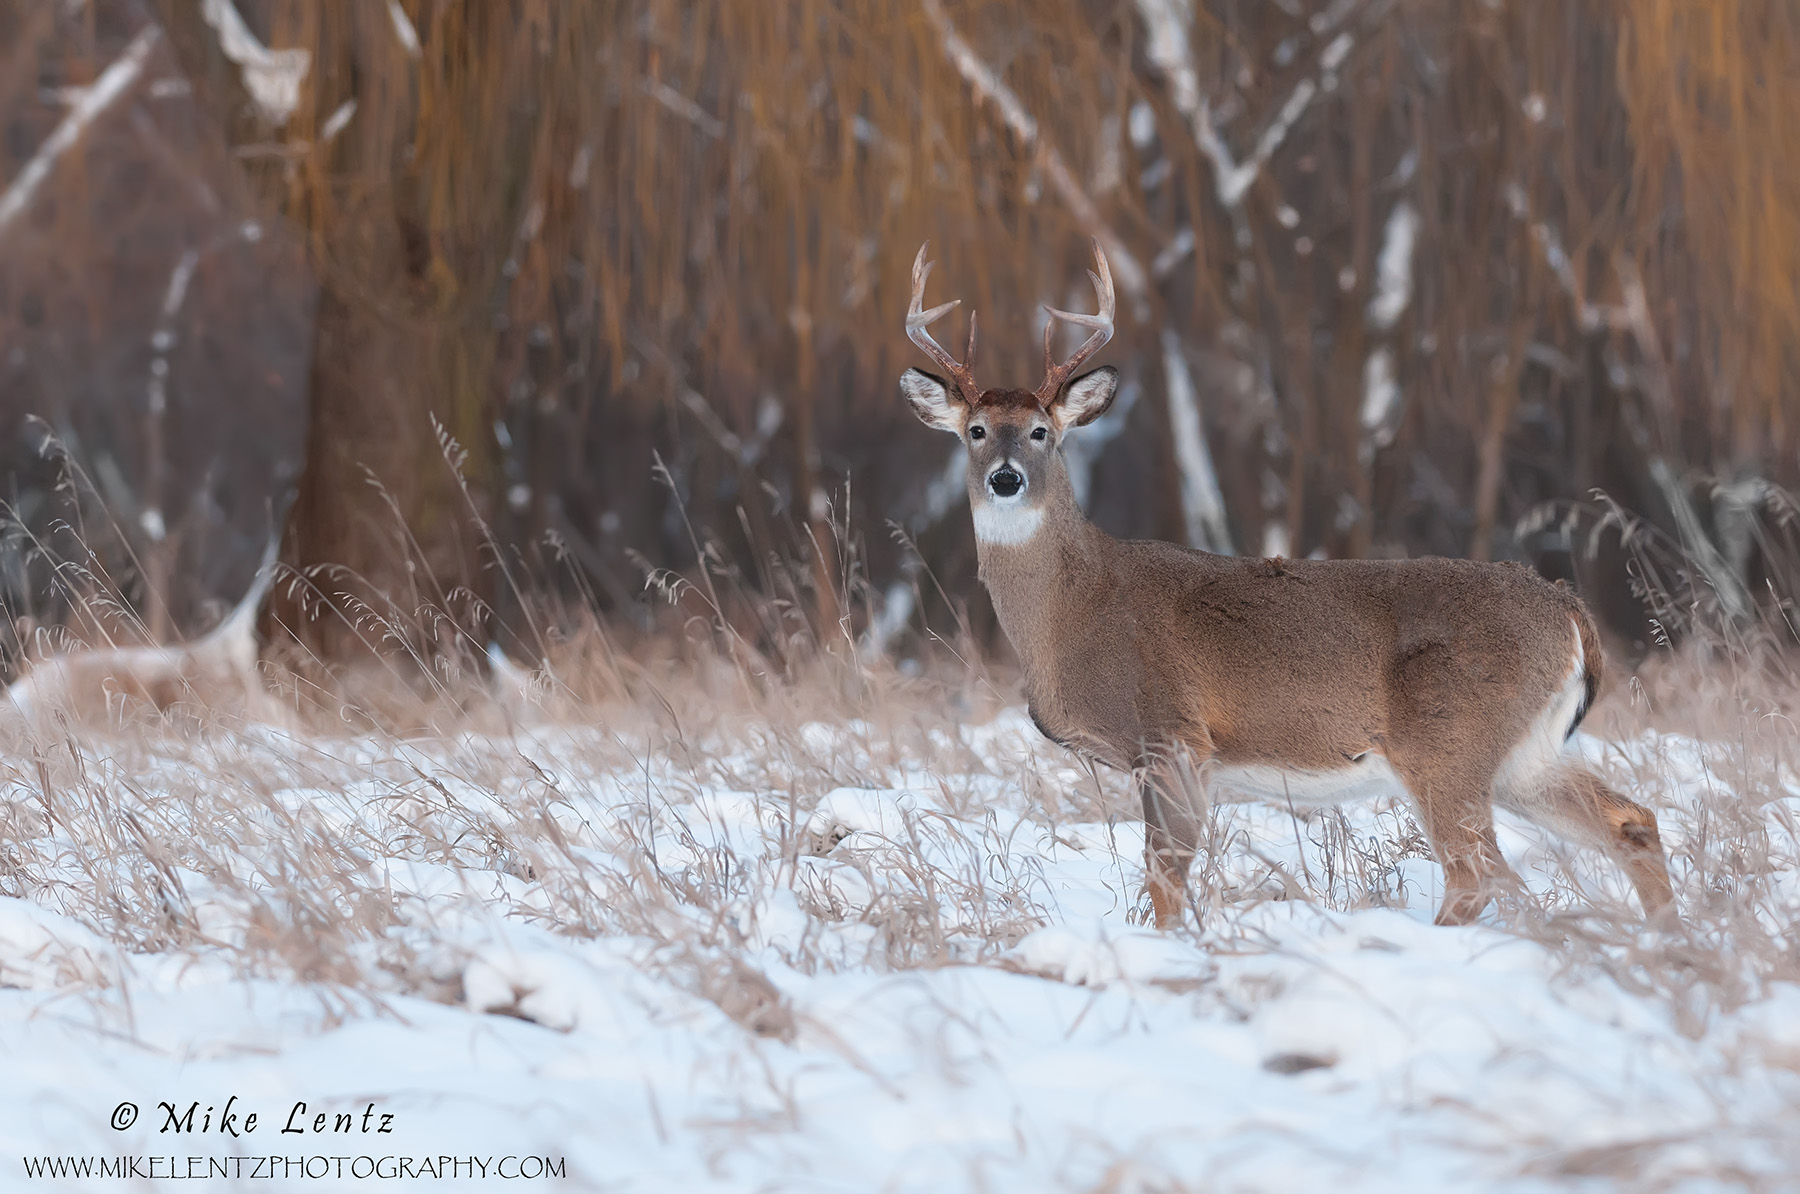 Whitetailed deer near winter willow tree